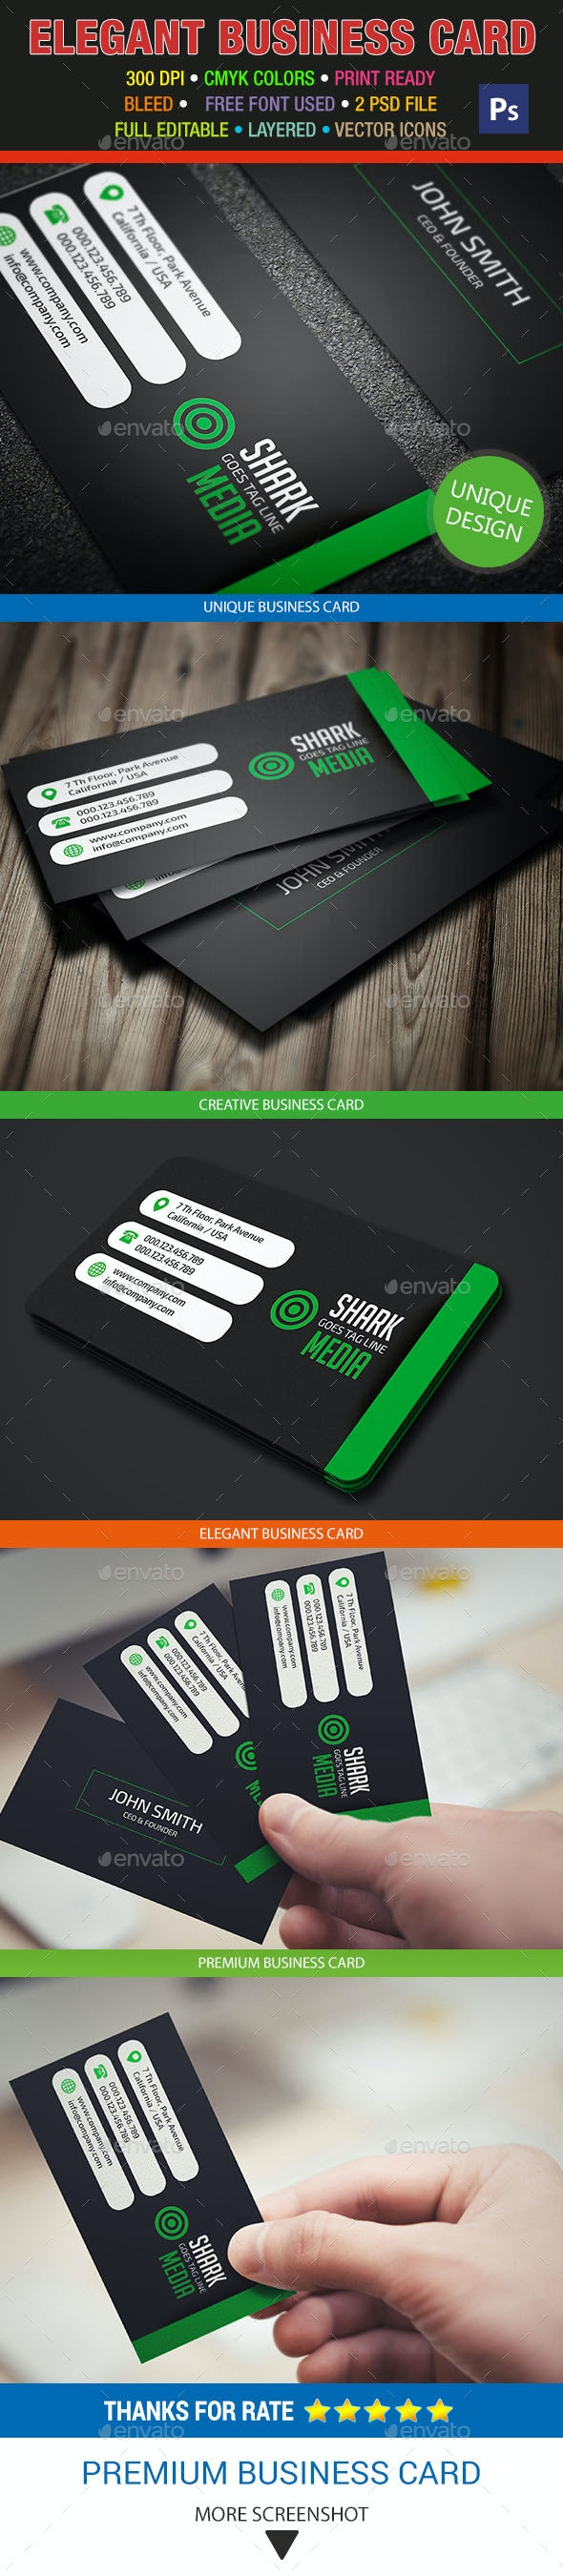 Elegant Business Card 326 - Corporate Business Cards